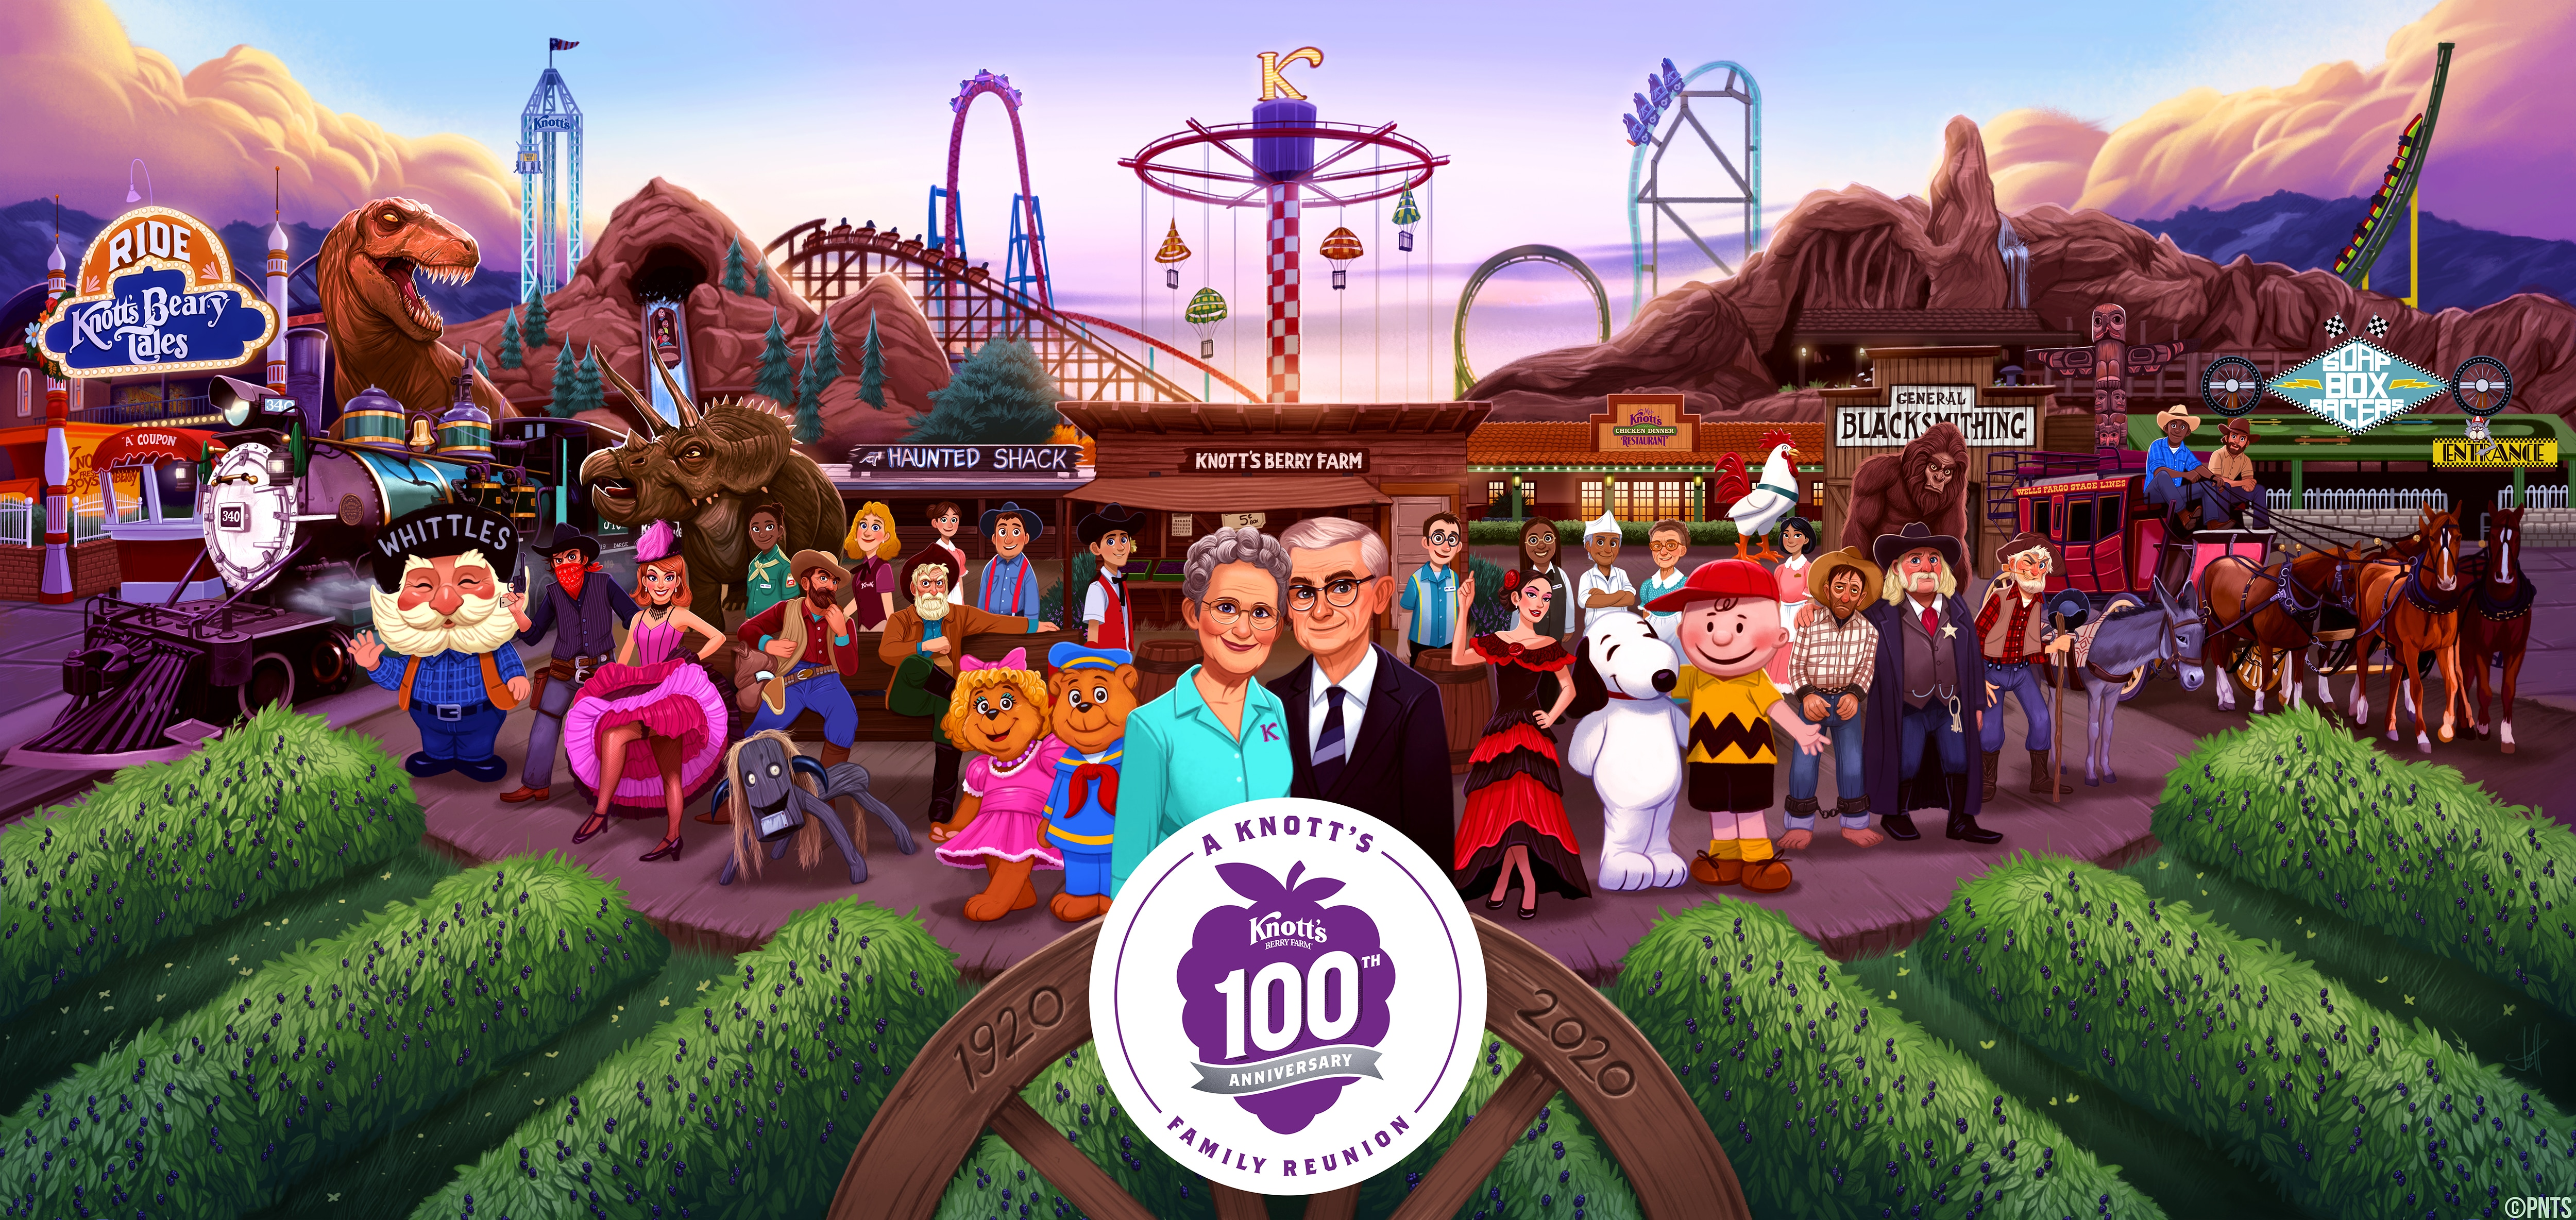 Knott's Berry Farm to Commemorate Their 100th Anniversary in the 2020 Rose Parade®